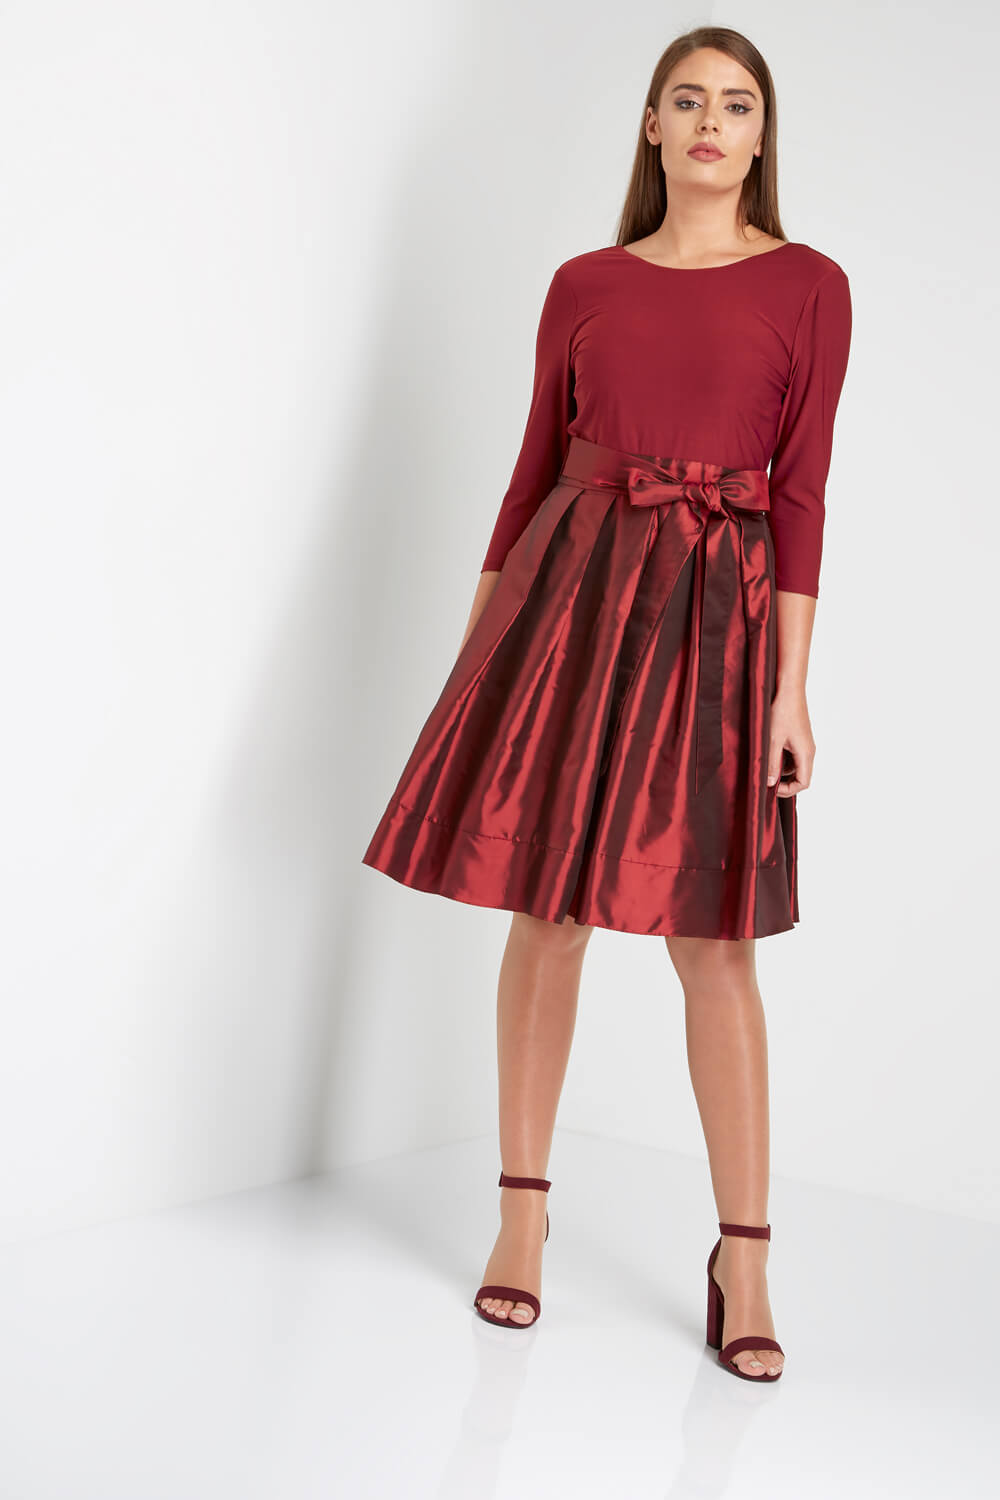 Roman-Originals-Women-039-s-Red-Fit-and-Flare-Dress-Sizes-10-20 thumbnail 8